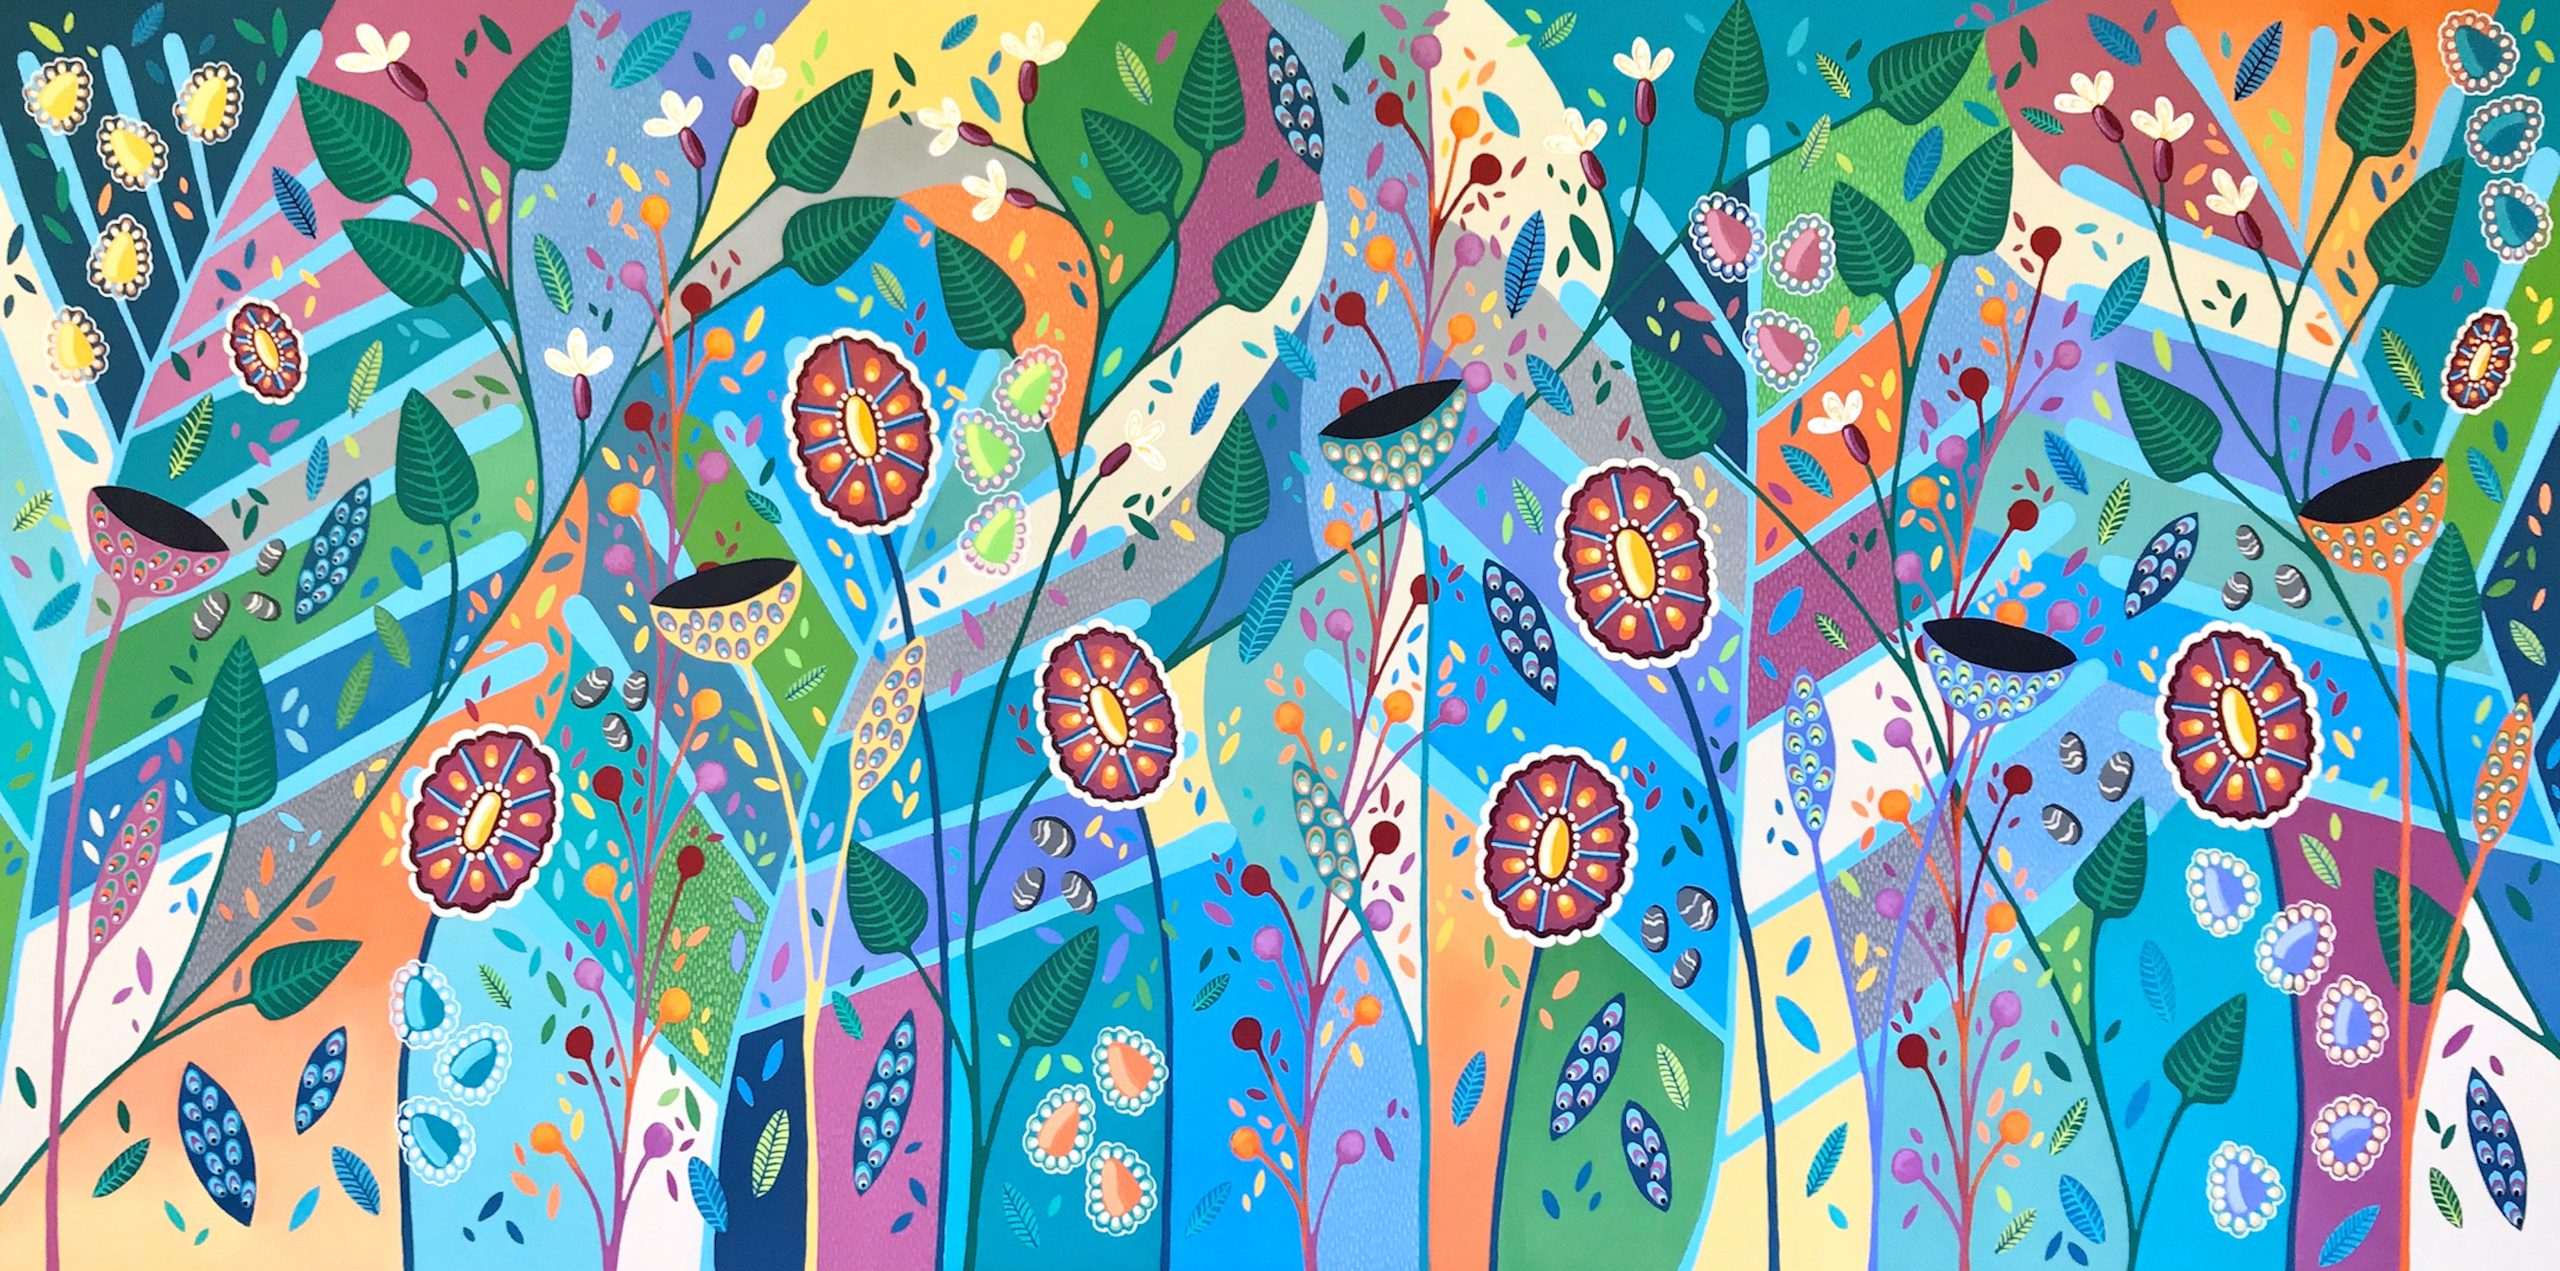 Blooming-Marvelous-by-Lisa-Frances-Judd-web-1